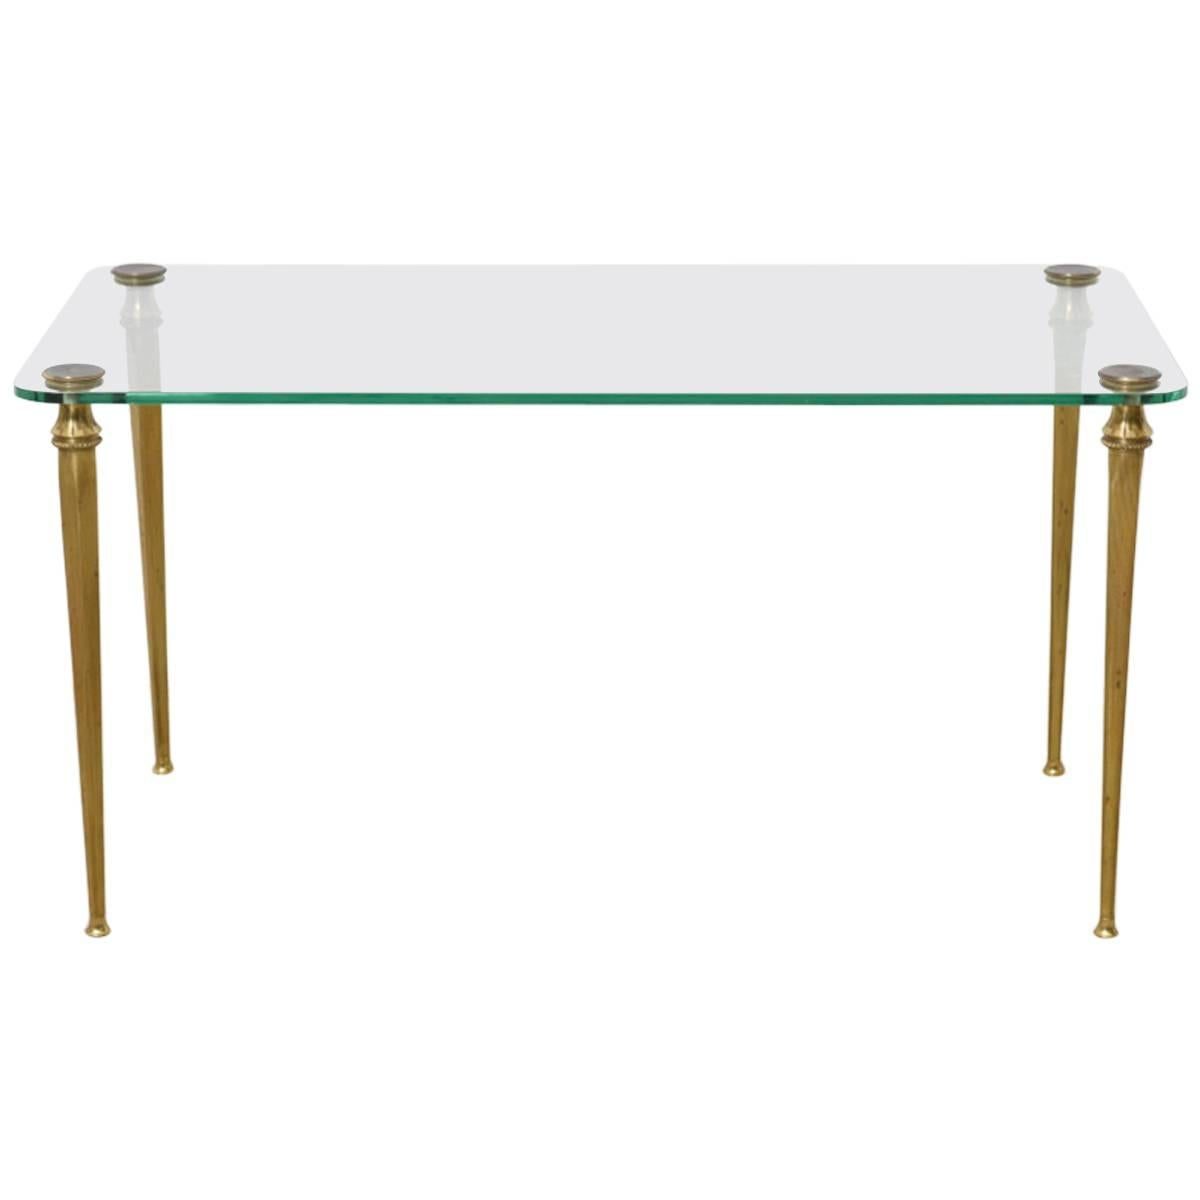 Brass Elegant Coffee, Cocktail Table, France, 1970s